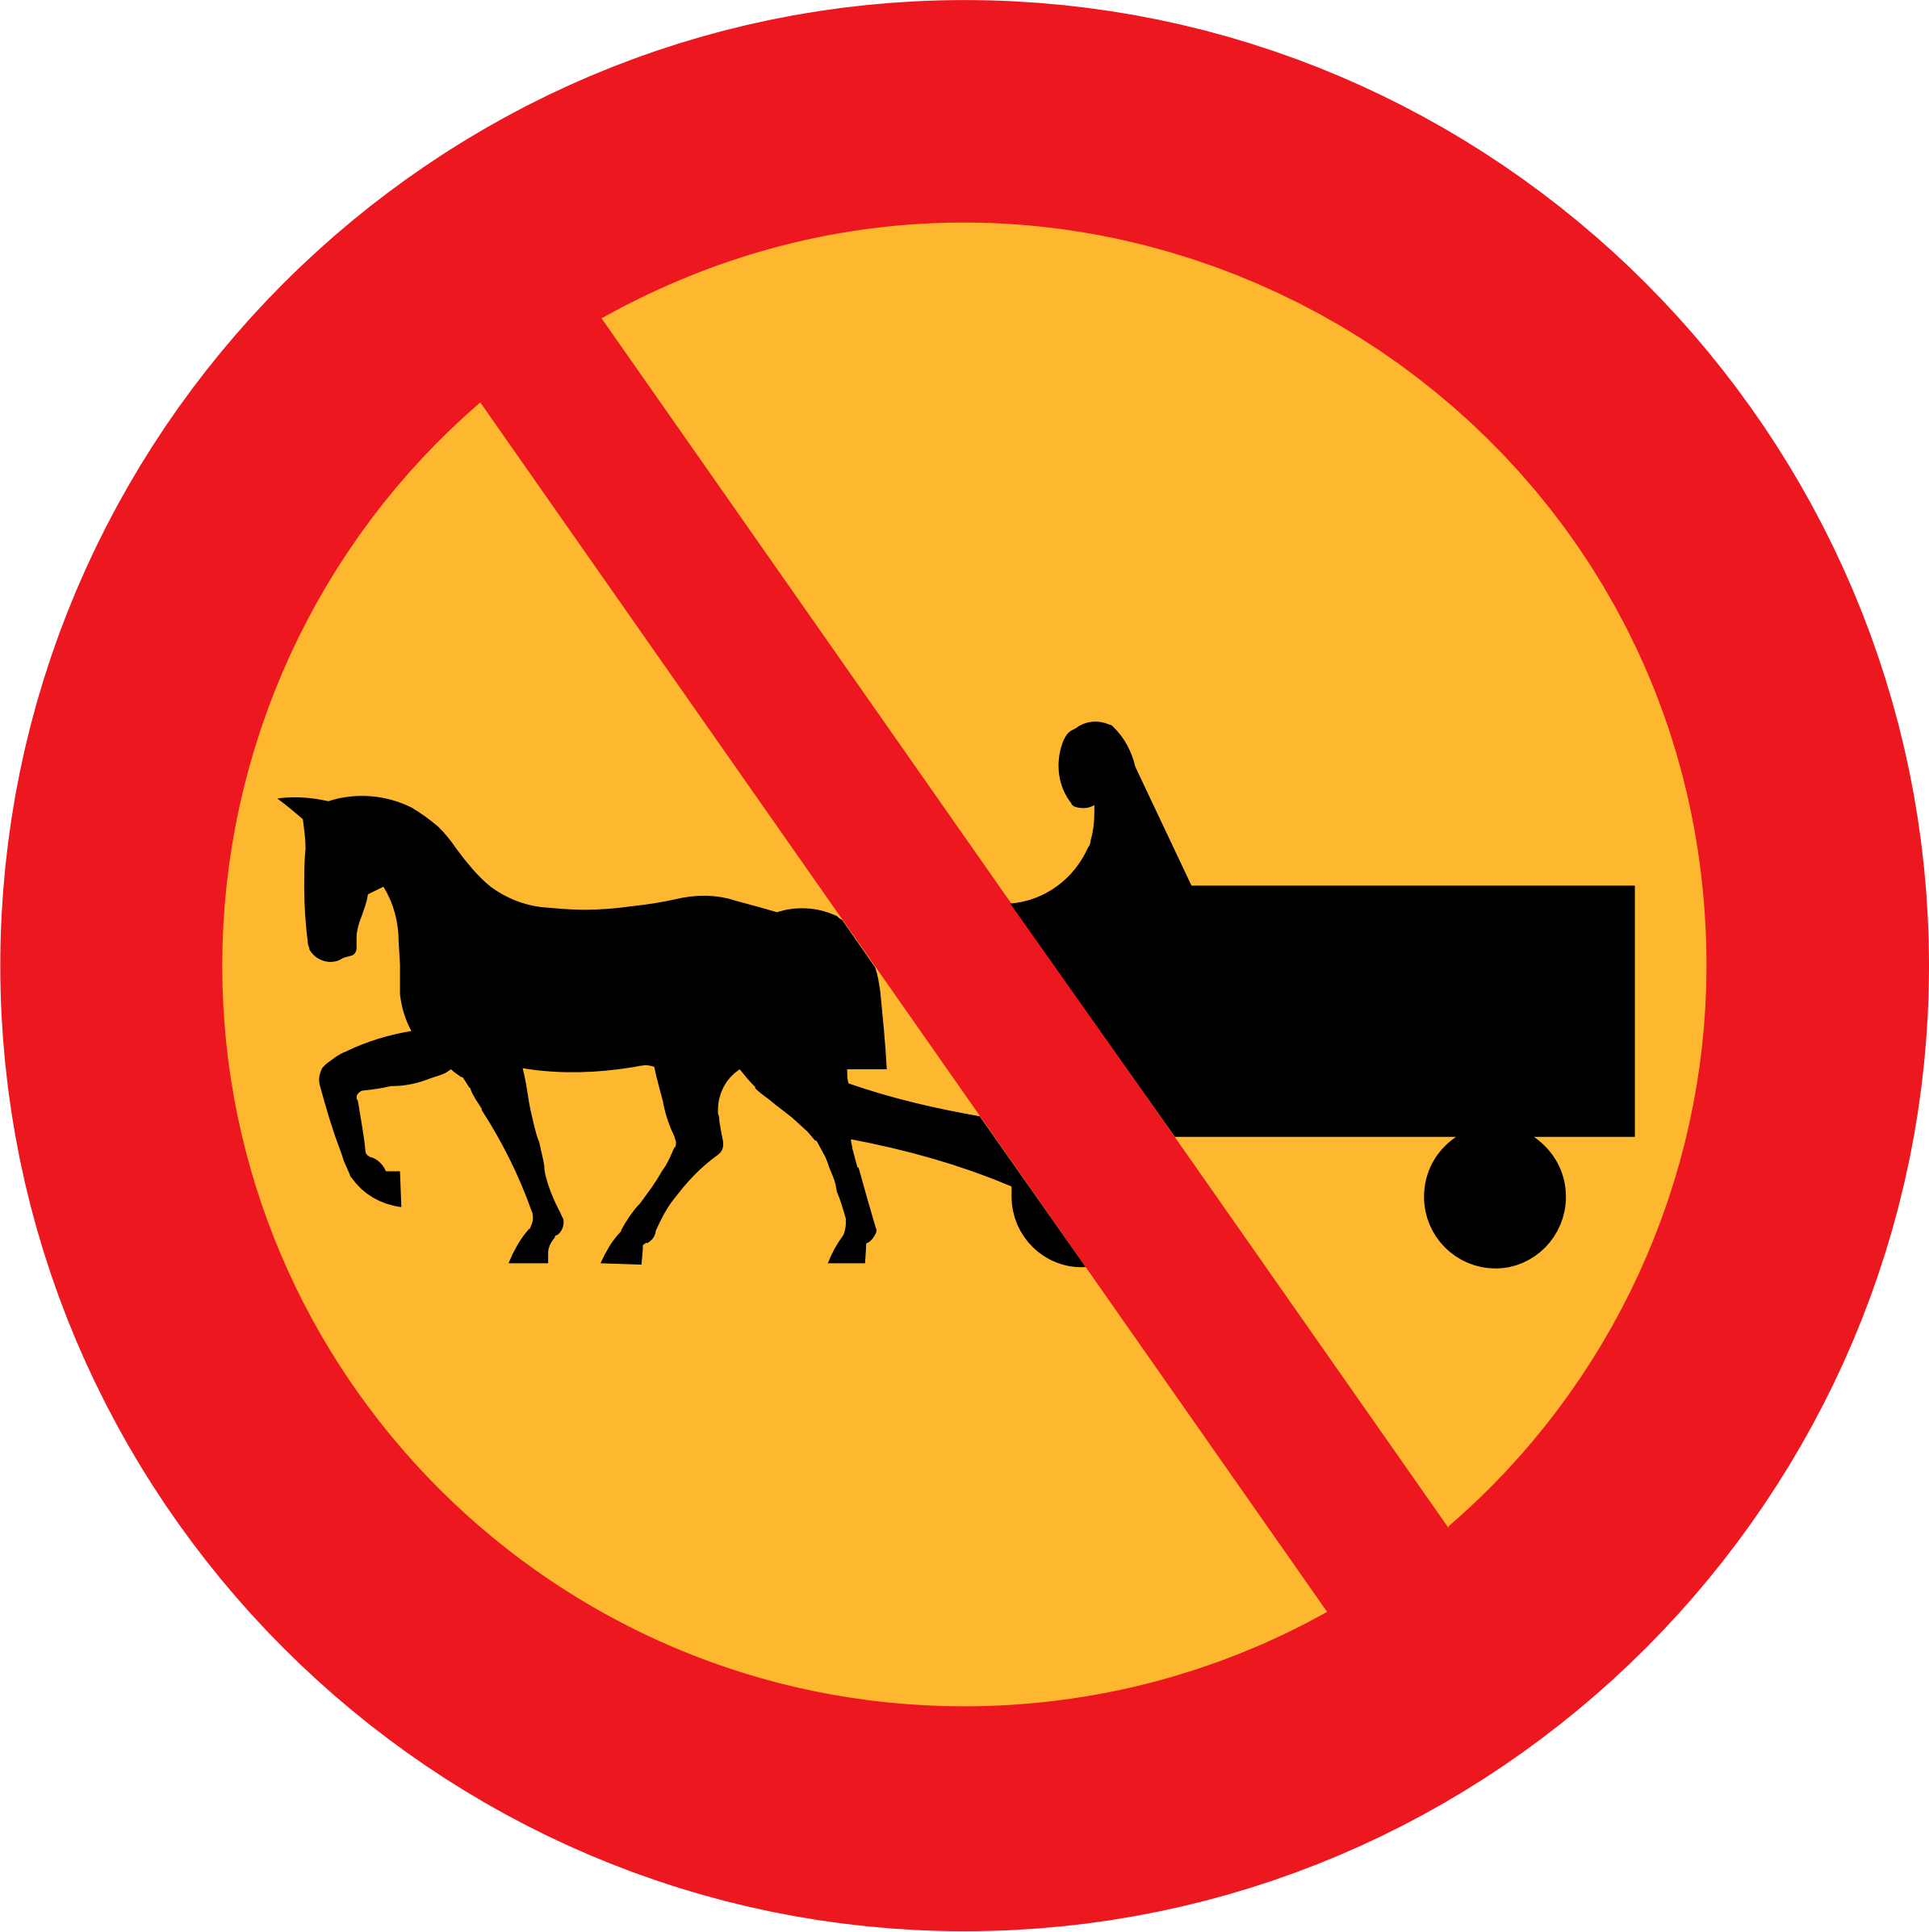 No horse and carts sign by ryanlerch